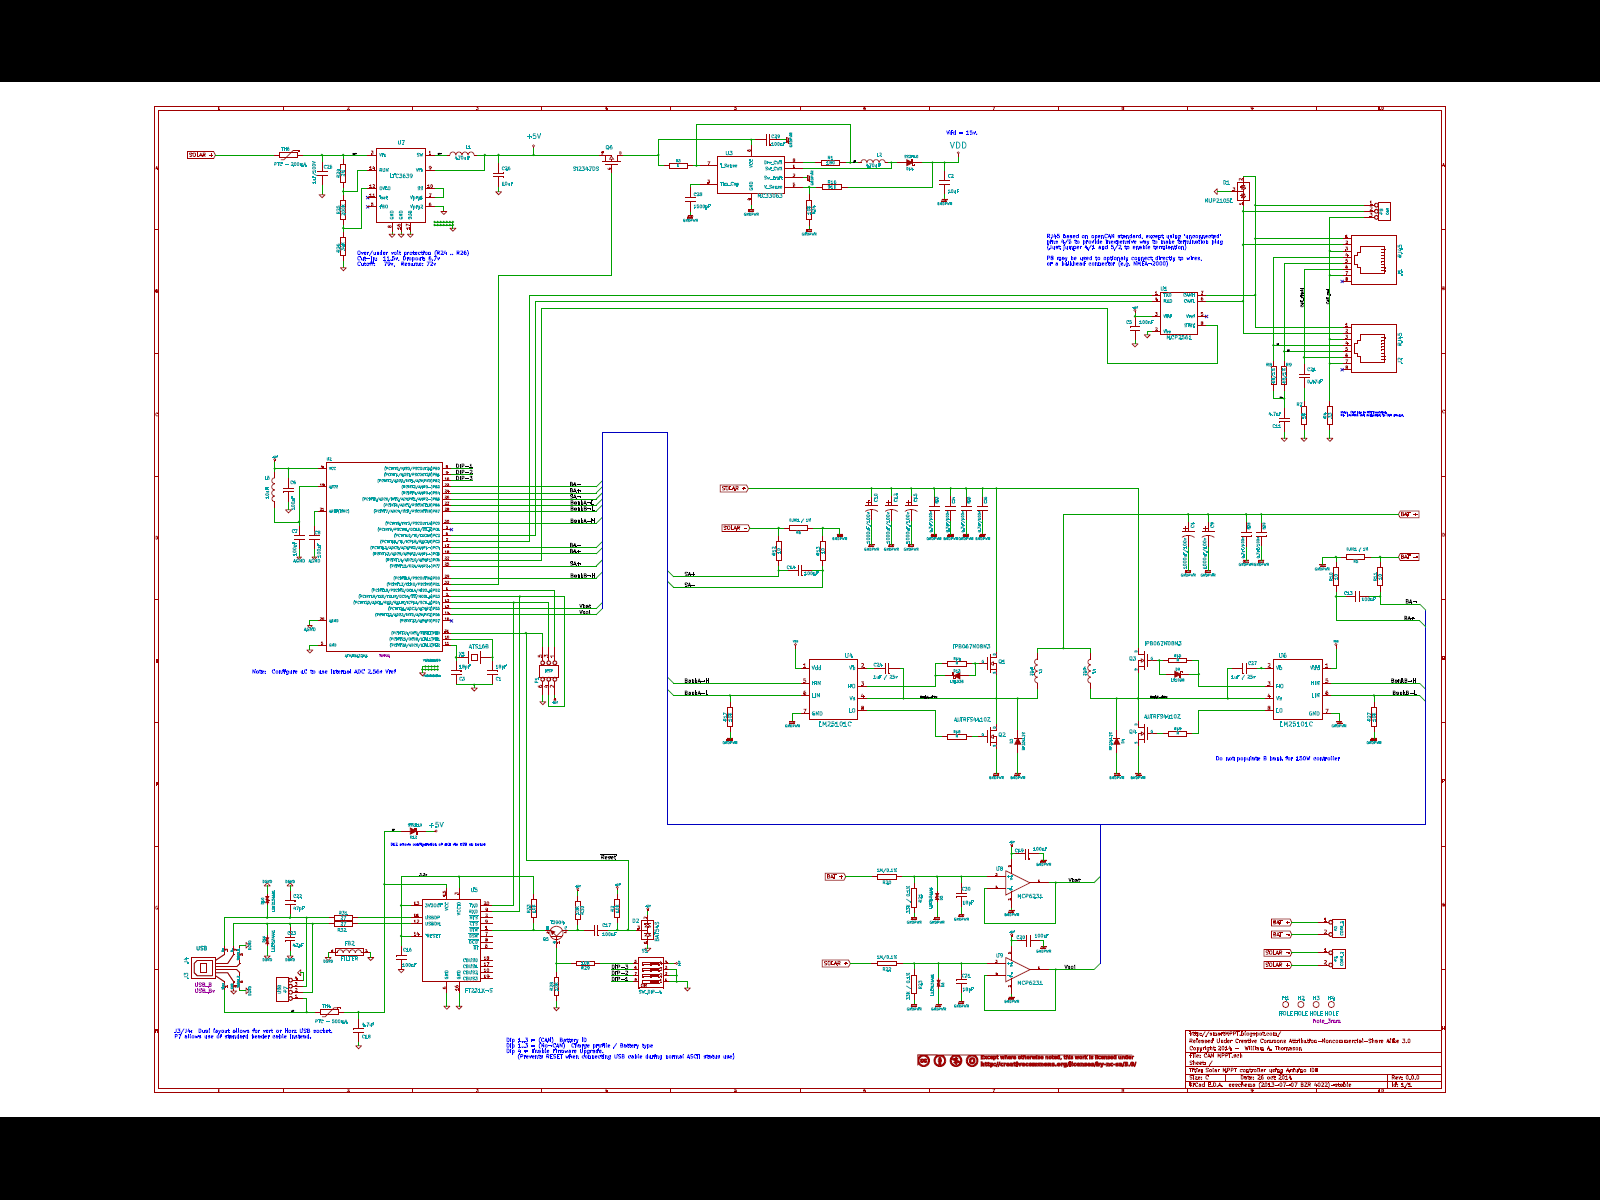 Smart Mppt Solar Controller Rought Draft 2 Of Schematic And A Circuit Diagram Click For Larger View Br Also See The Pdf Under Schematics Link Above